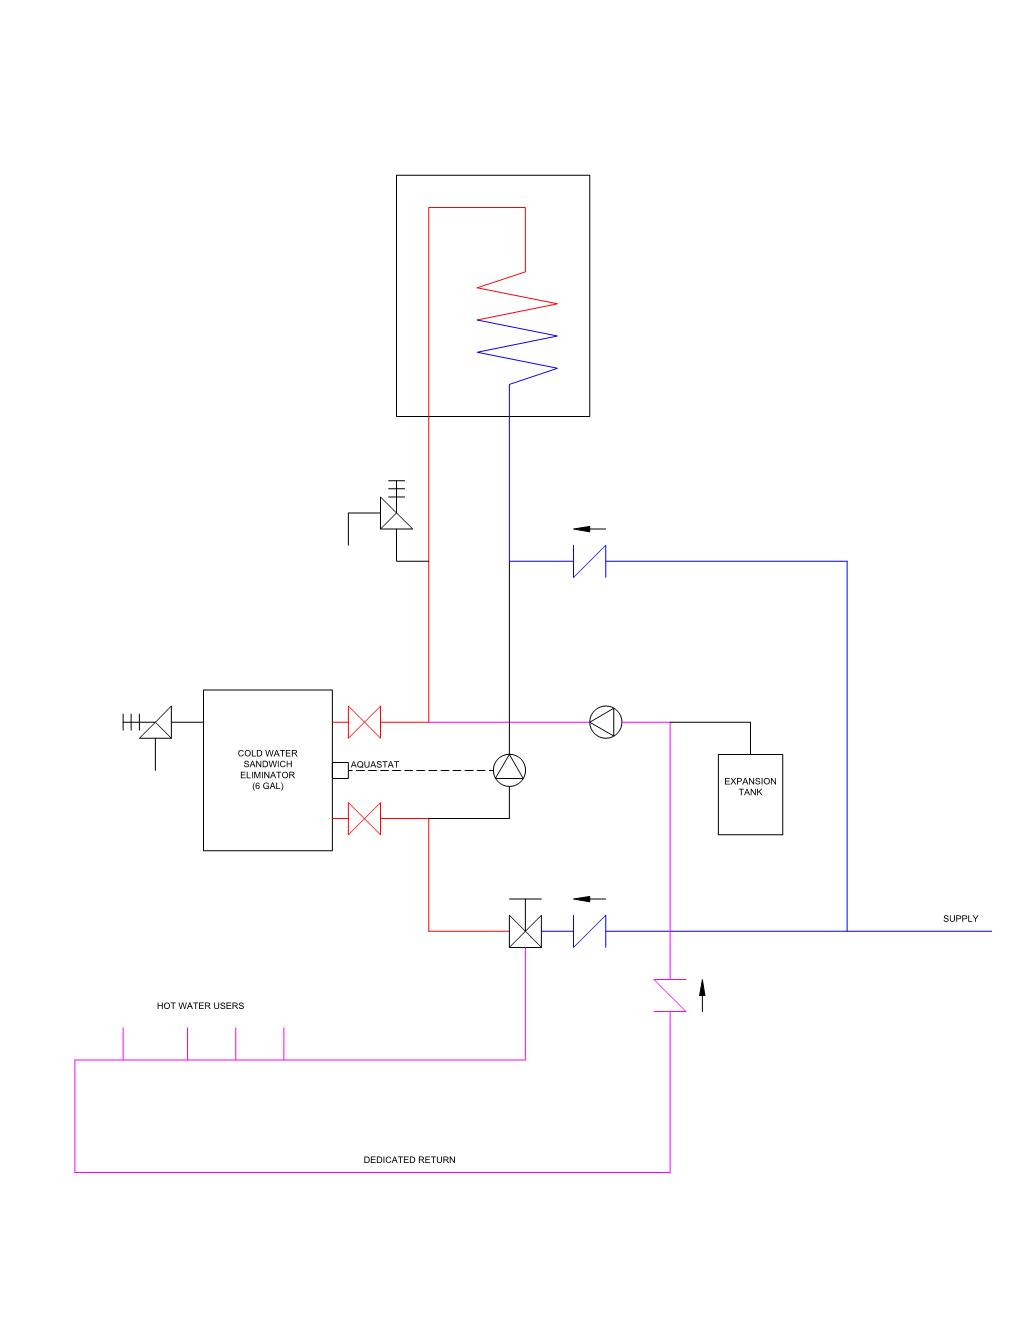 Cold Sandwich Eliminator With Circulation Pump Is This Diagram Correct Heating Help The Wall Tankless water heaters are designed to heat water as it flows from the pipes to the user. cold sandwich eliminator with